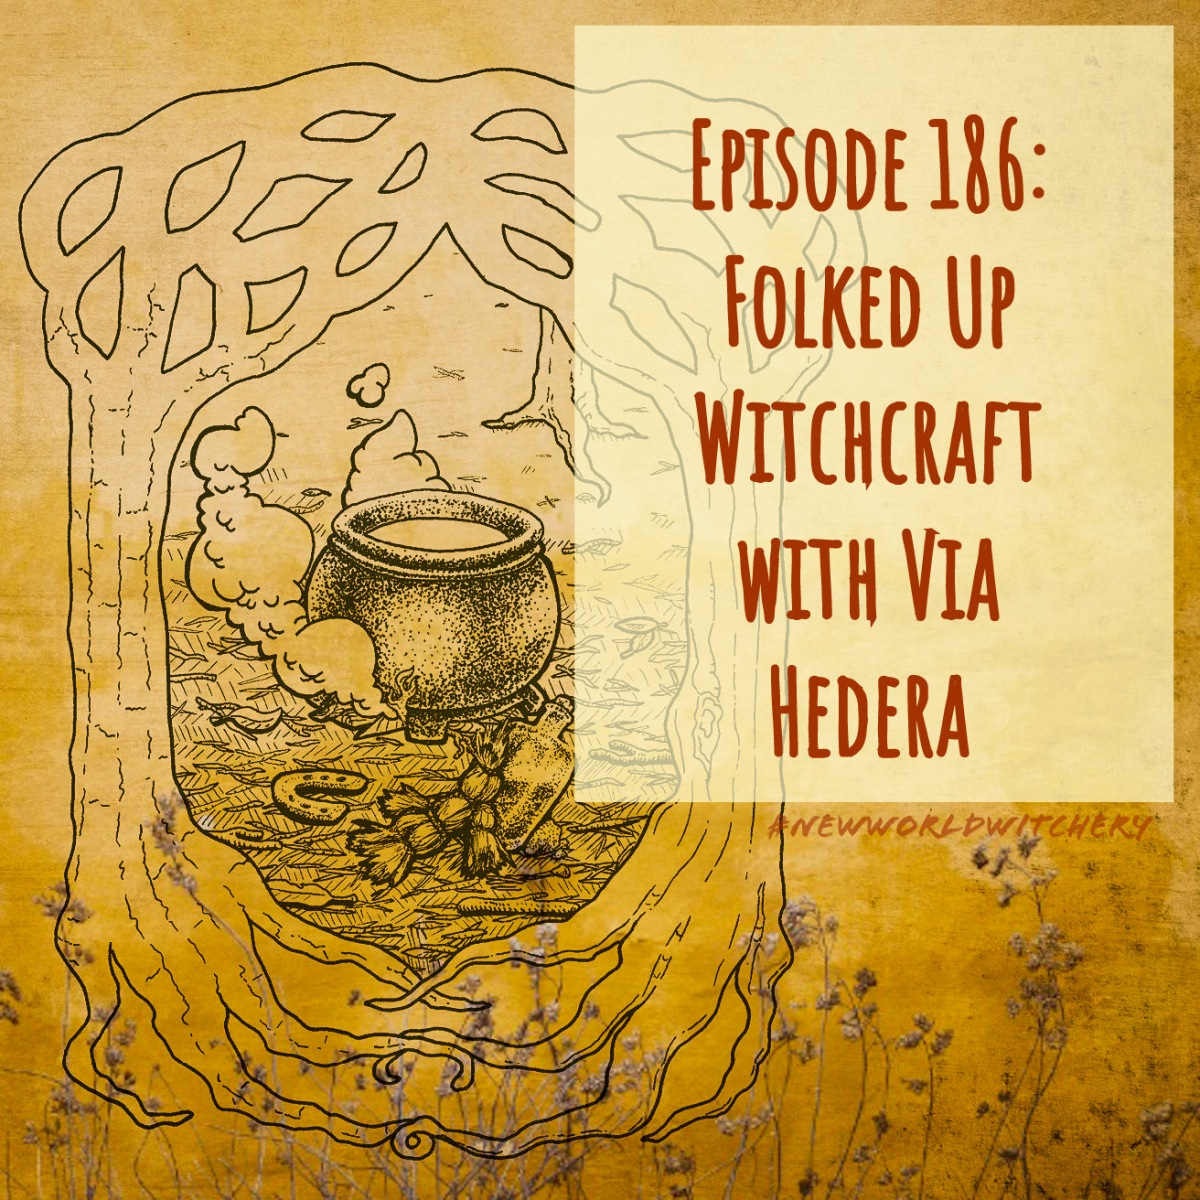 Episode 186 – Folked Up Witchcraft with Via Hedera